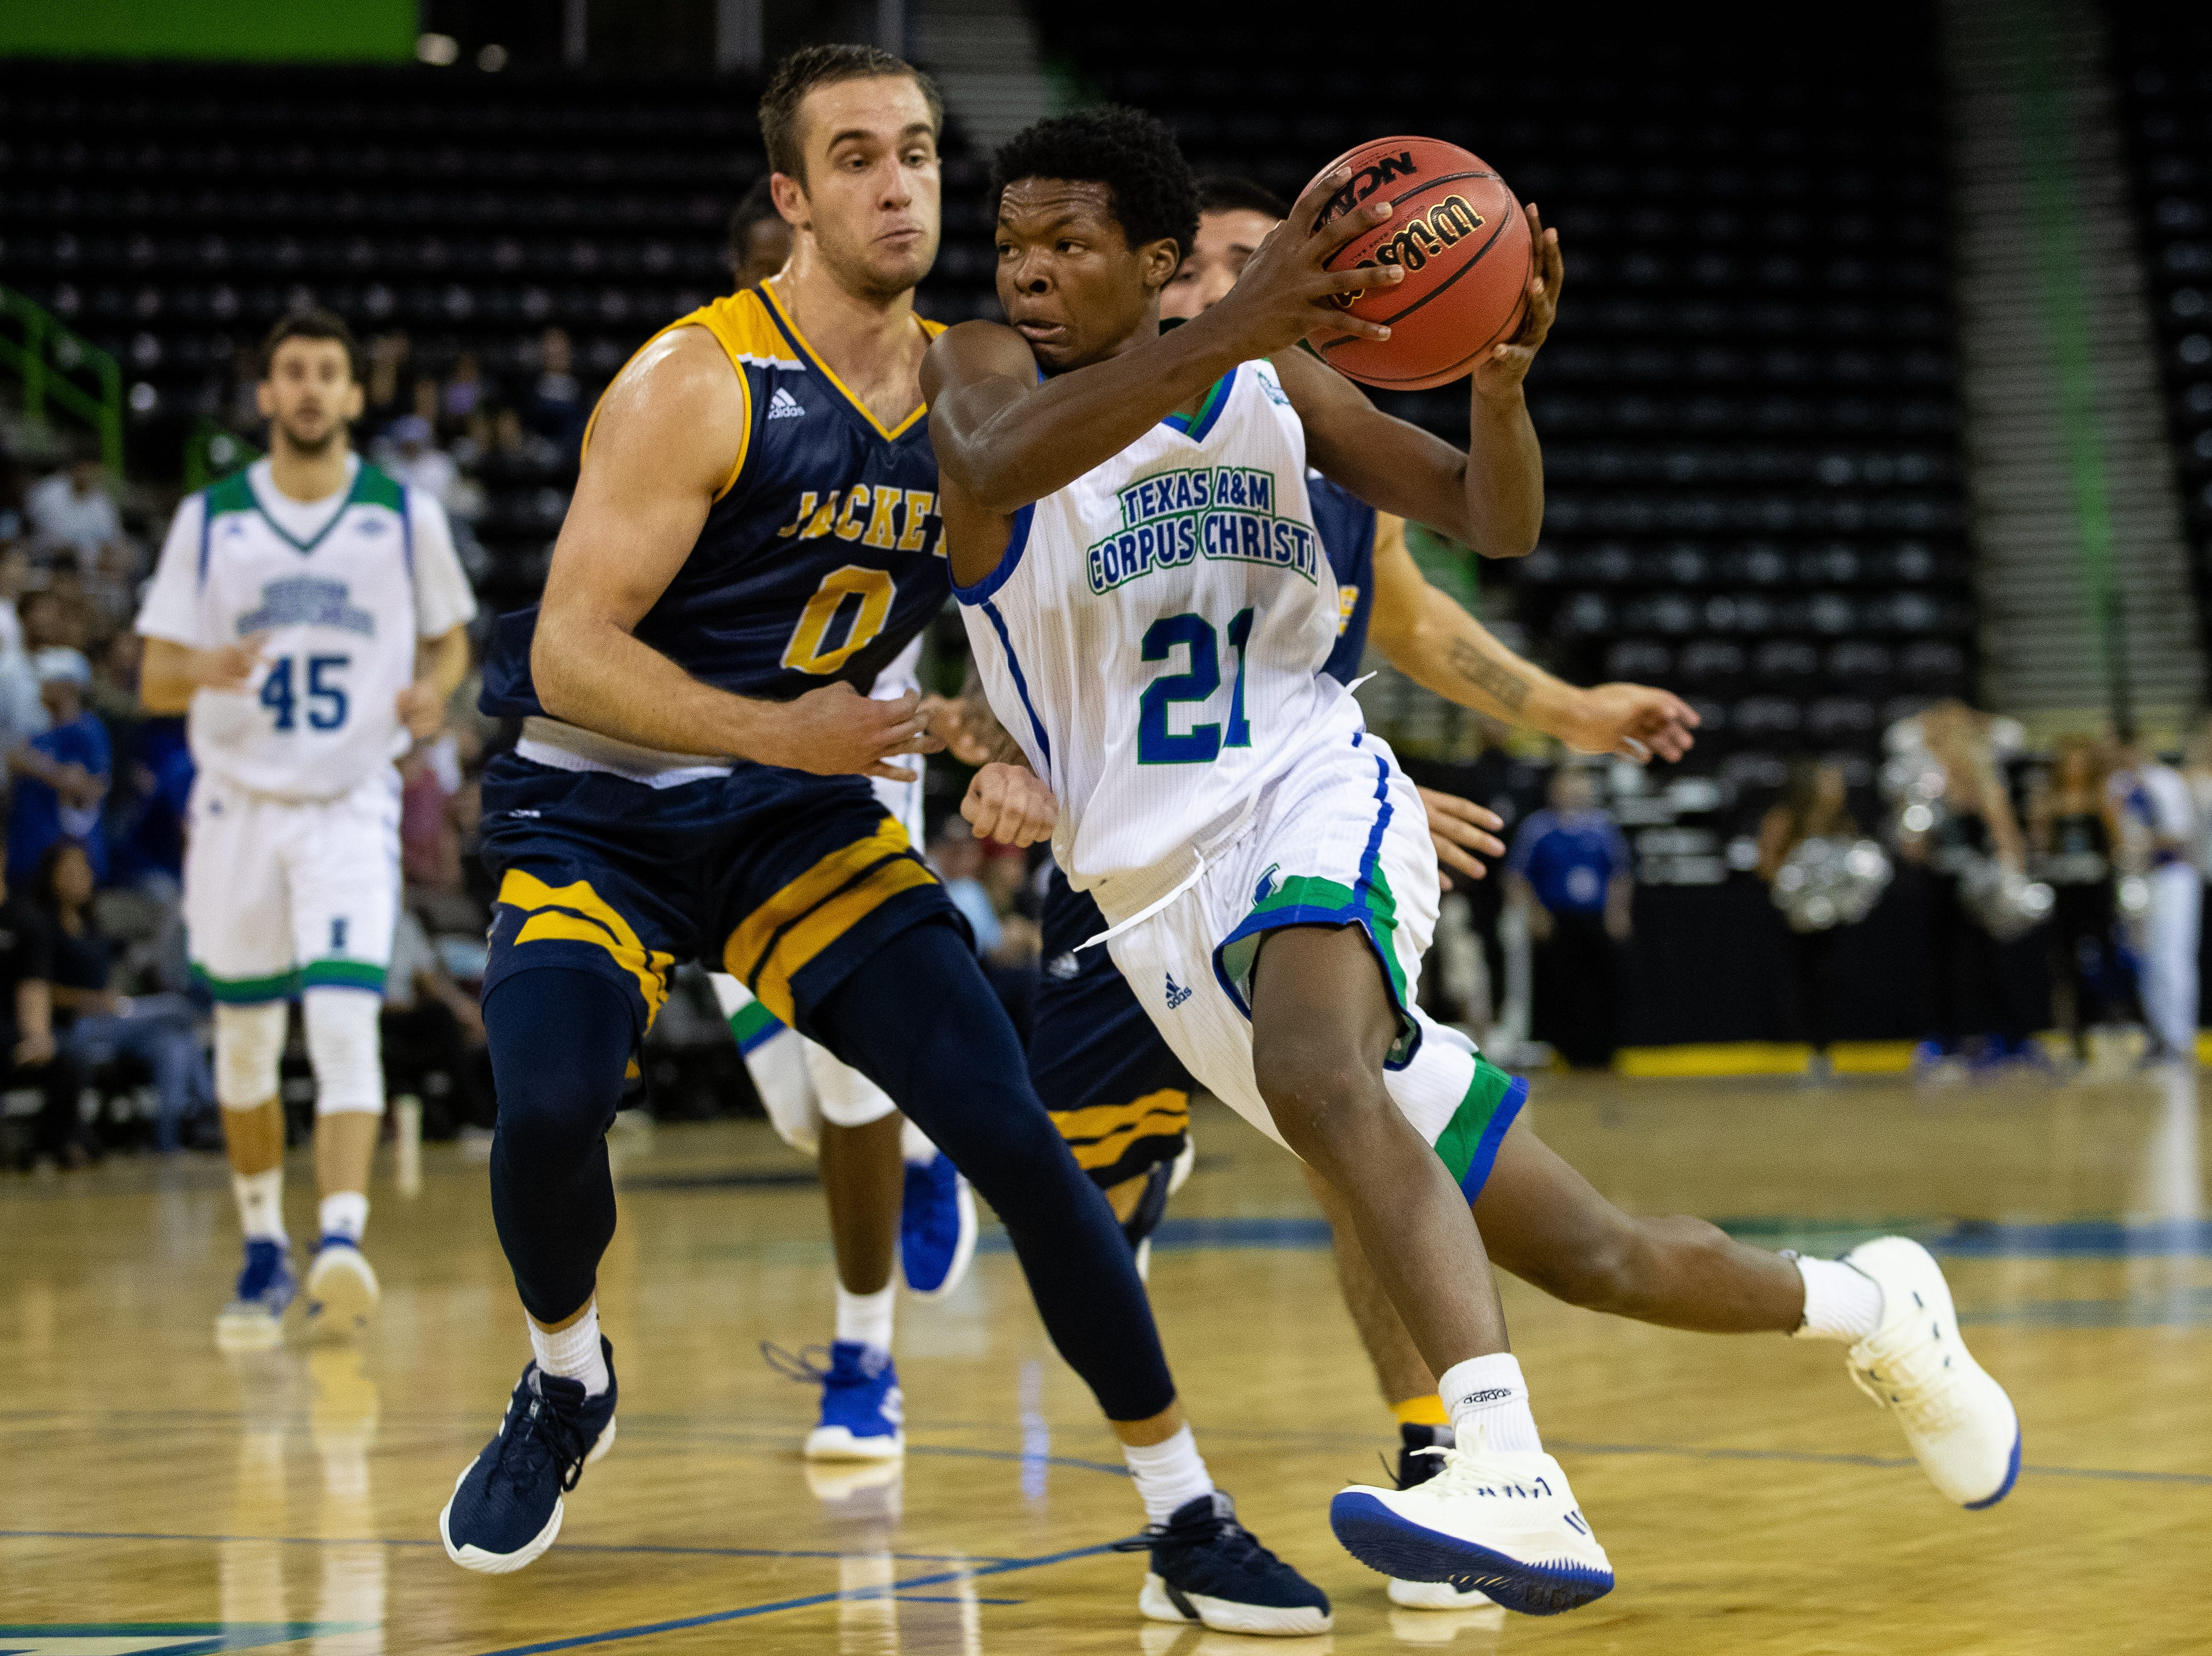 Islanders defeat Howard Payne 61-34 at the American Bank Center on Wednesday, Nov. 7, 2018.